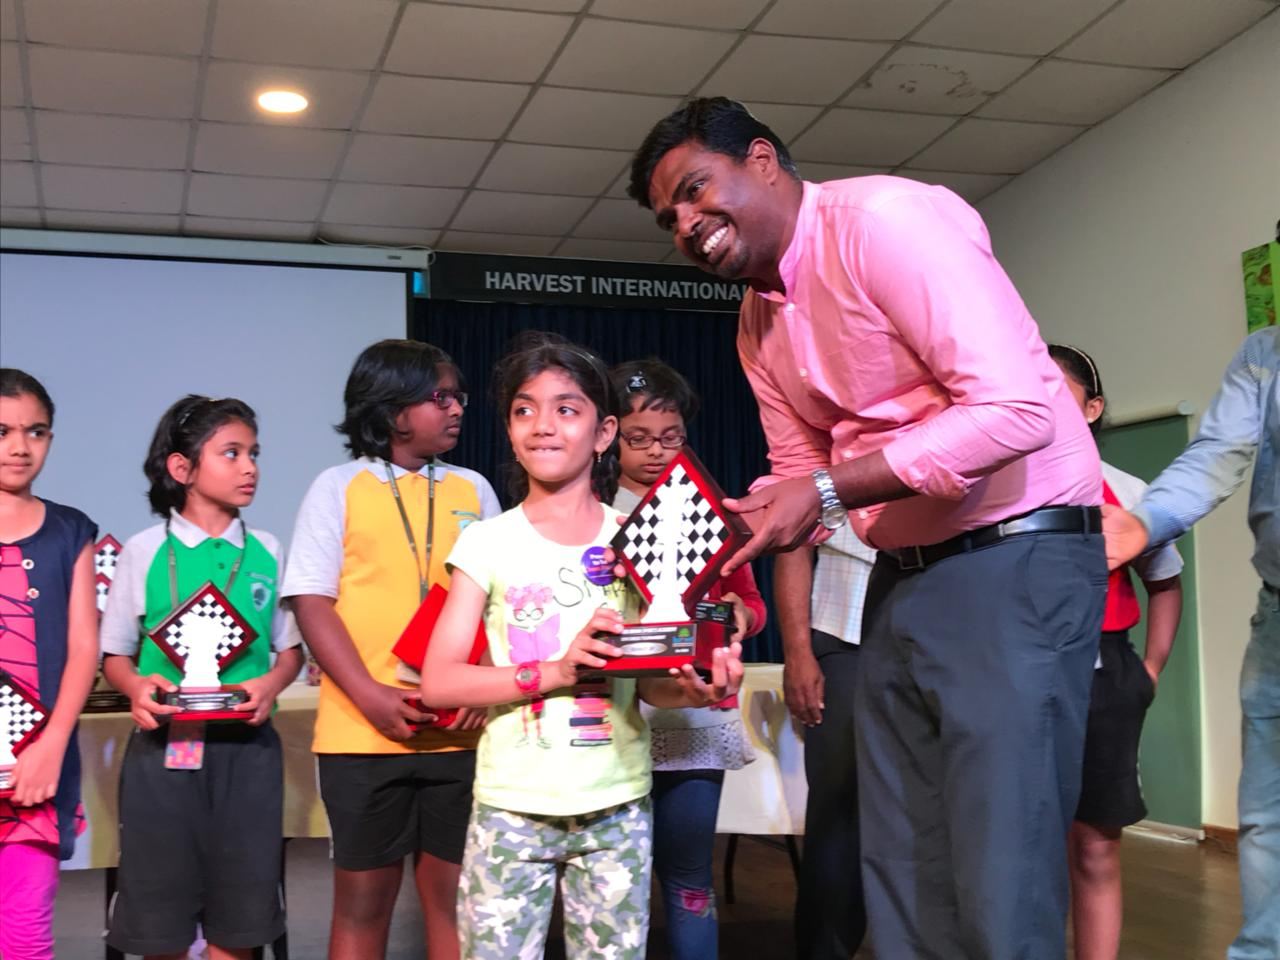 Sanikommu Manasvi places 2nd in U10 Category - Girls of the 8th TBSA Rapid Chess Tournament held in Bangalore